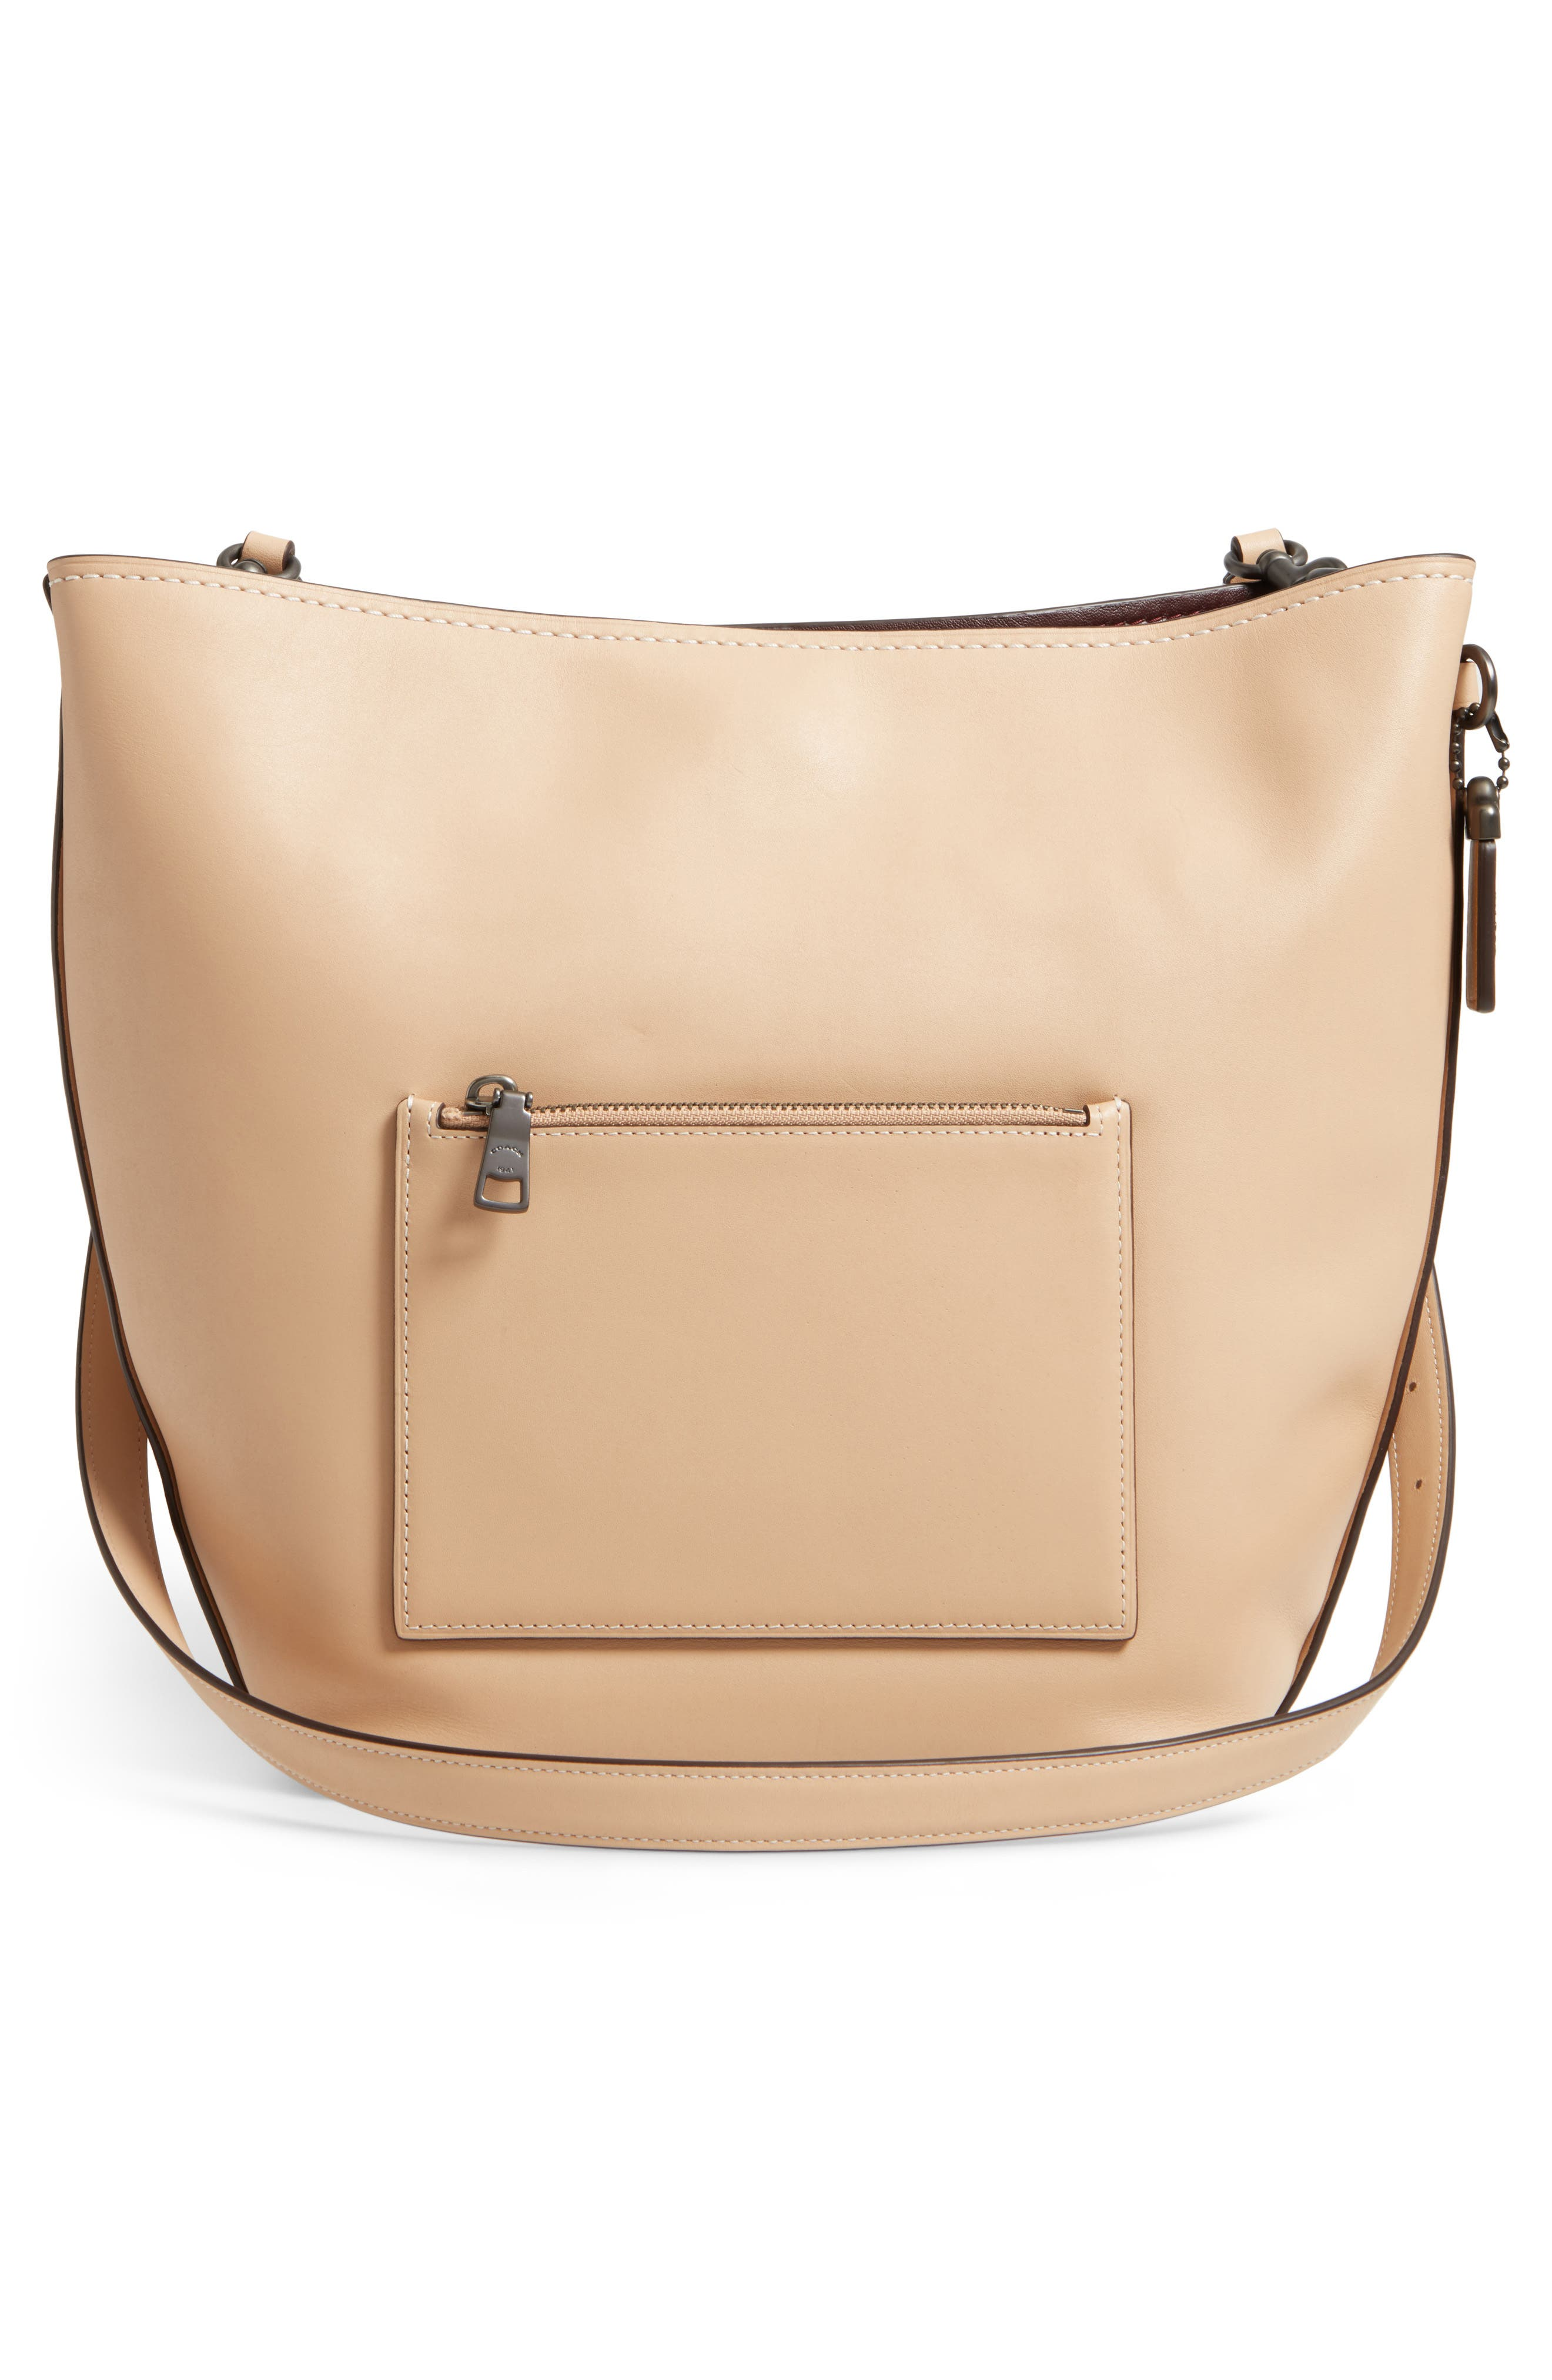 Linked Leather Tote,                             Alternate thumbnail 3, color,                             249